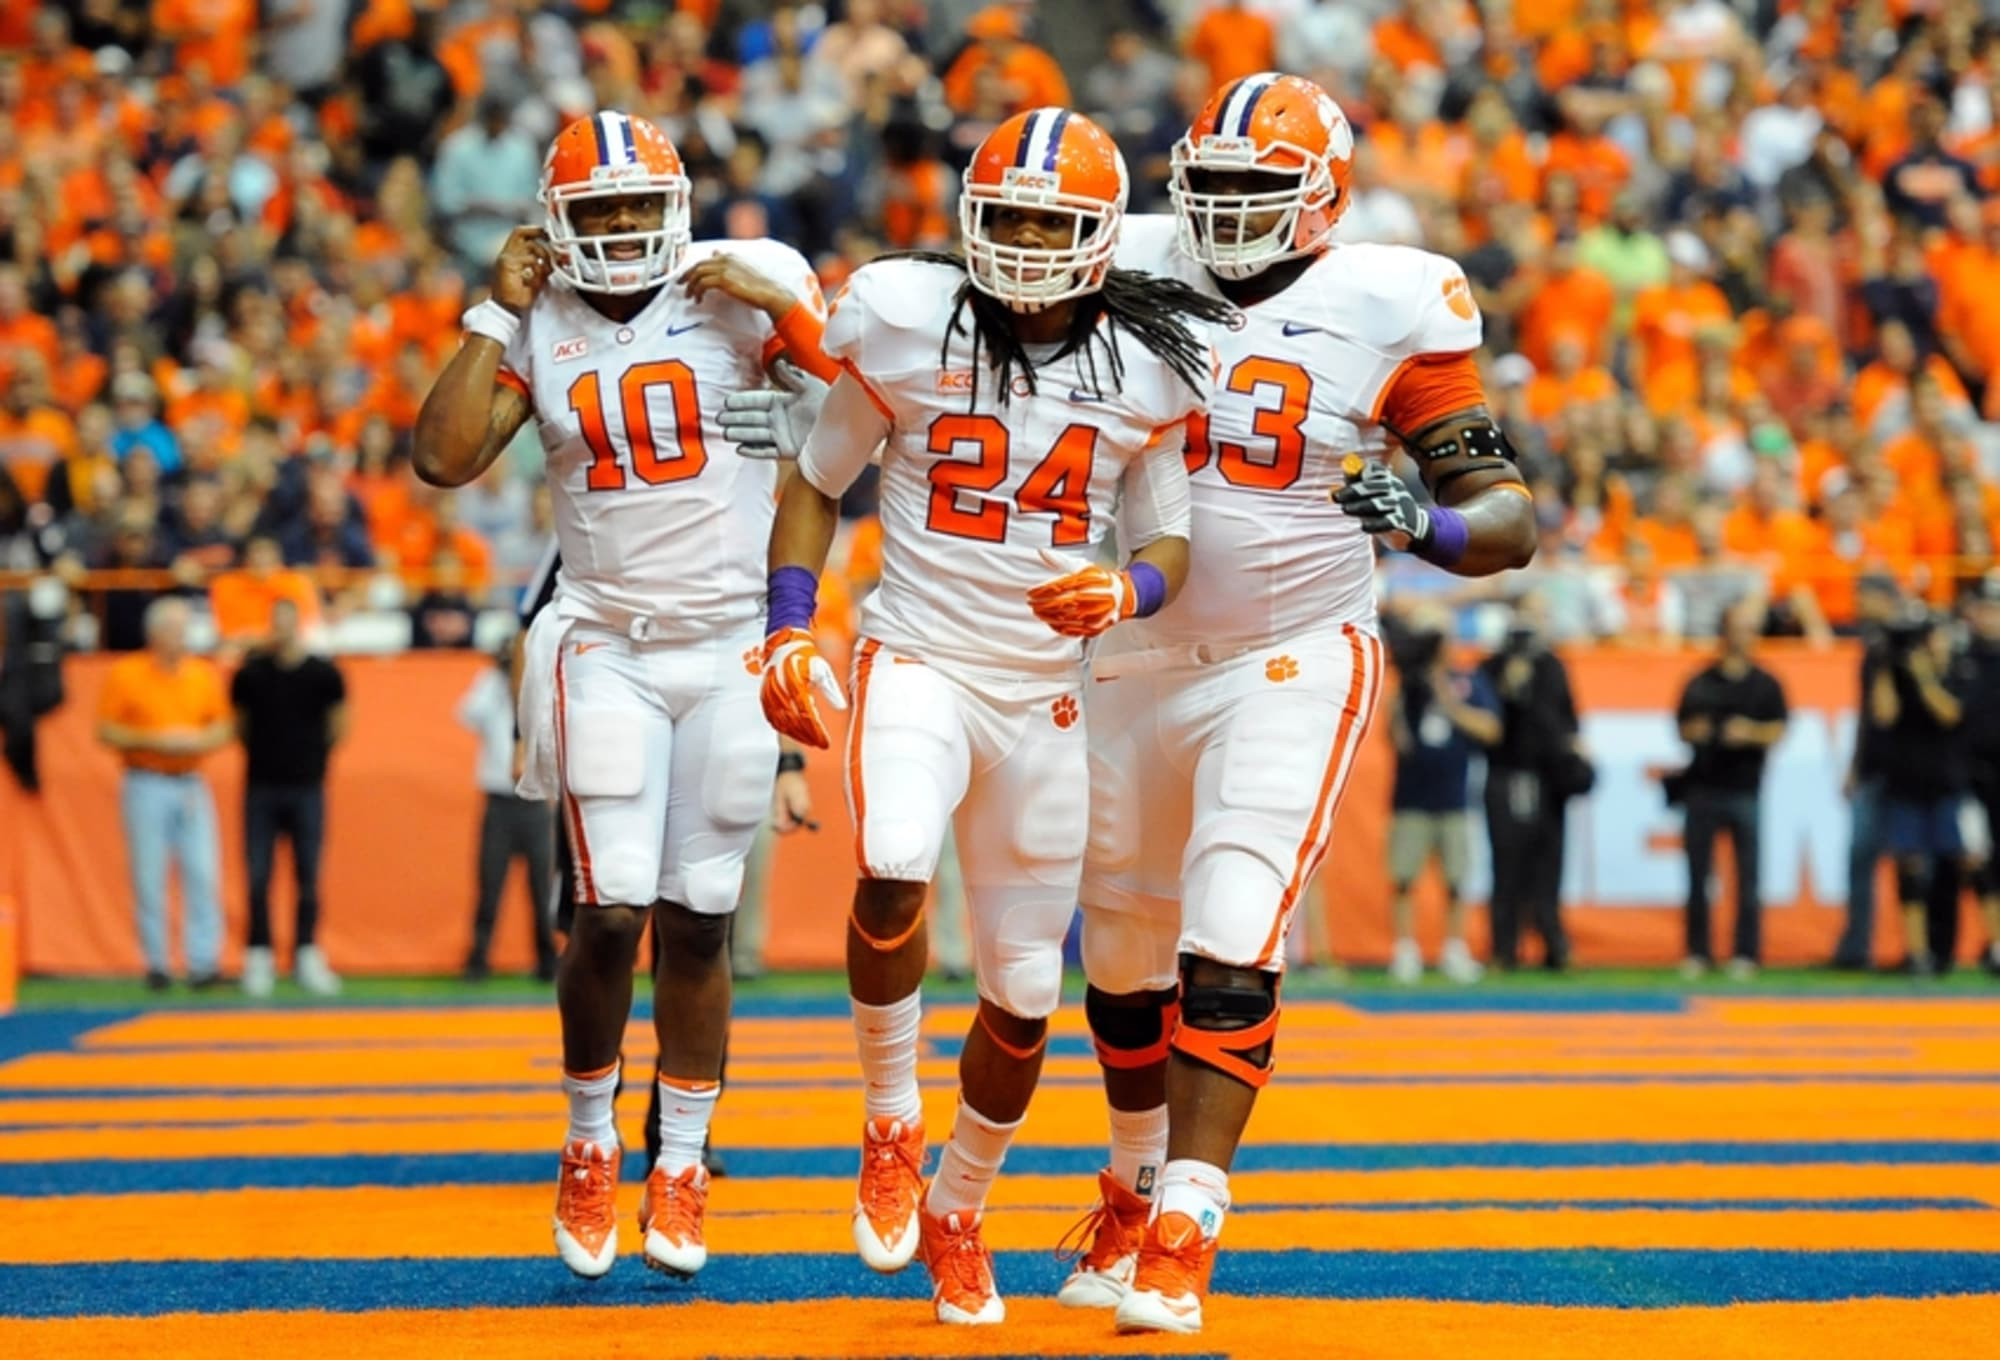 Clemson RB Zac Brooks out for 2014 season